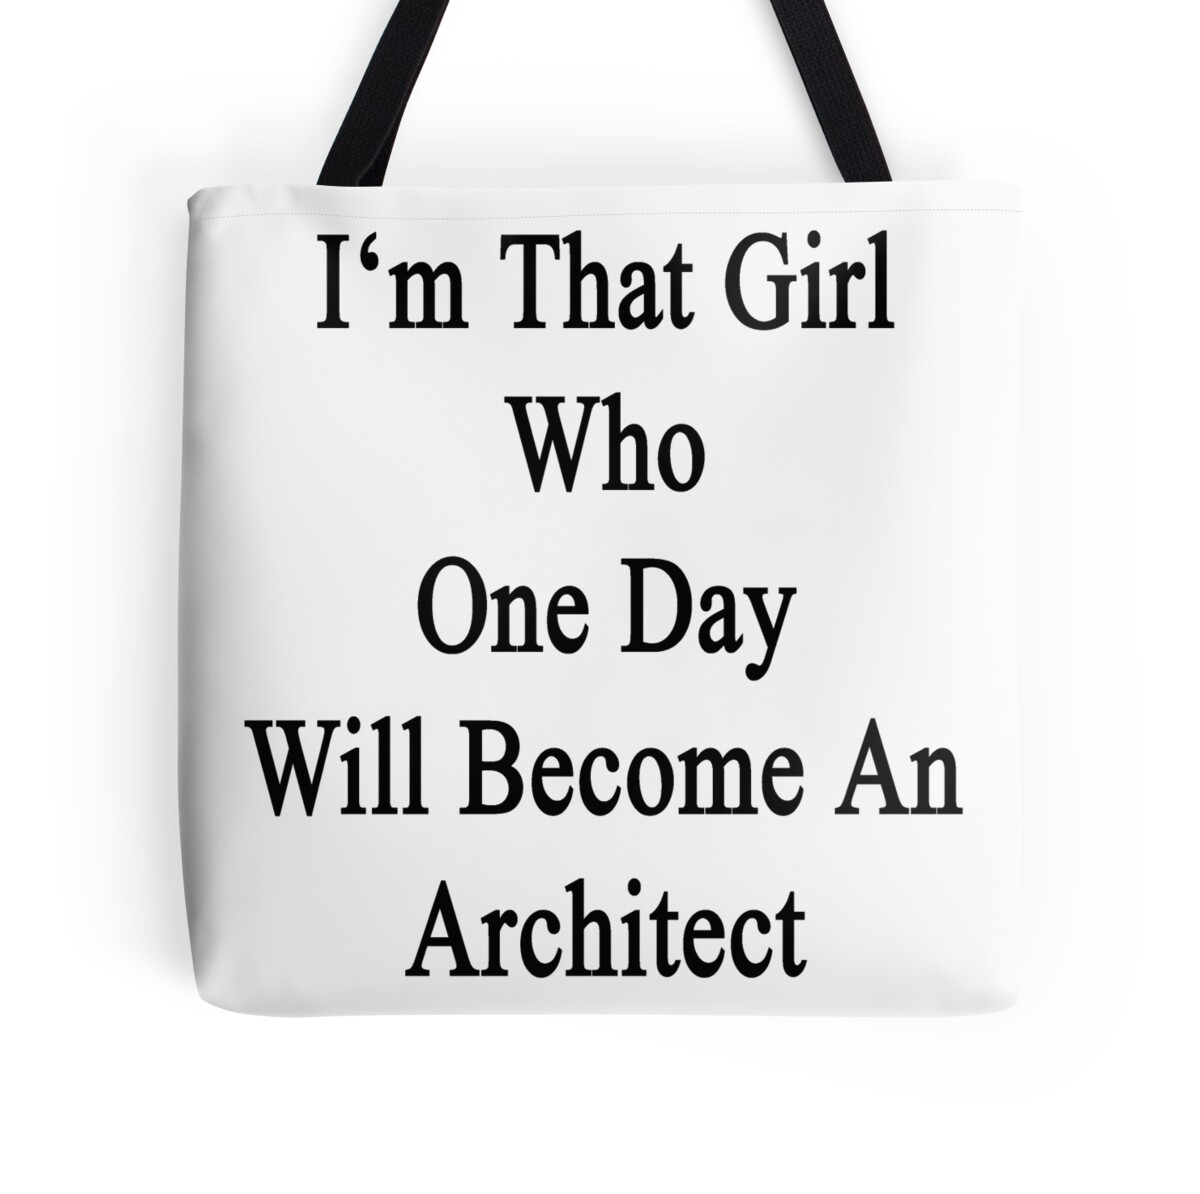 "Become An Architect i'm that girl who one day will become an architect "" tote bags"